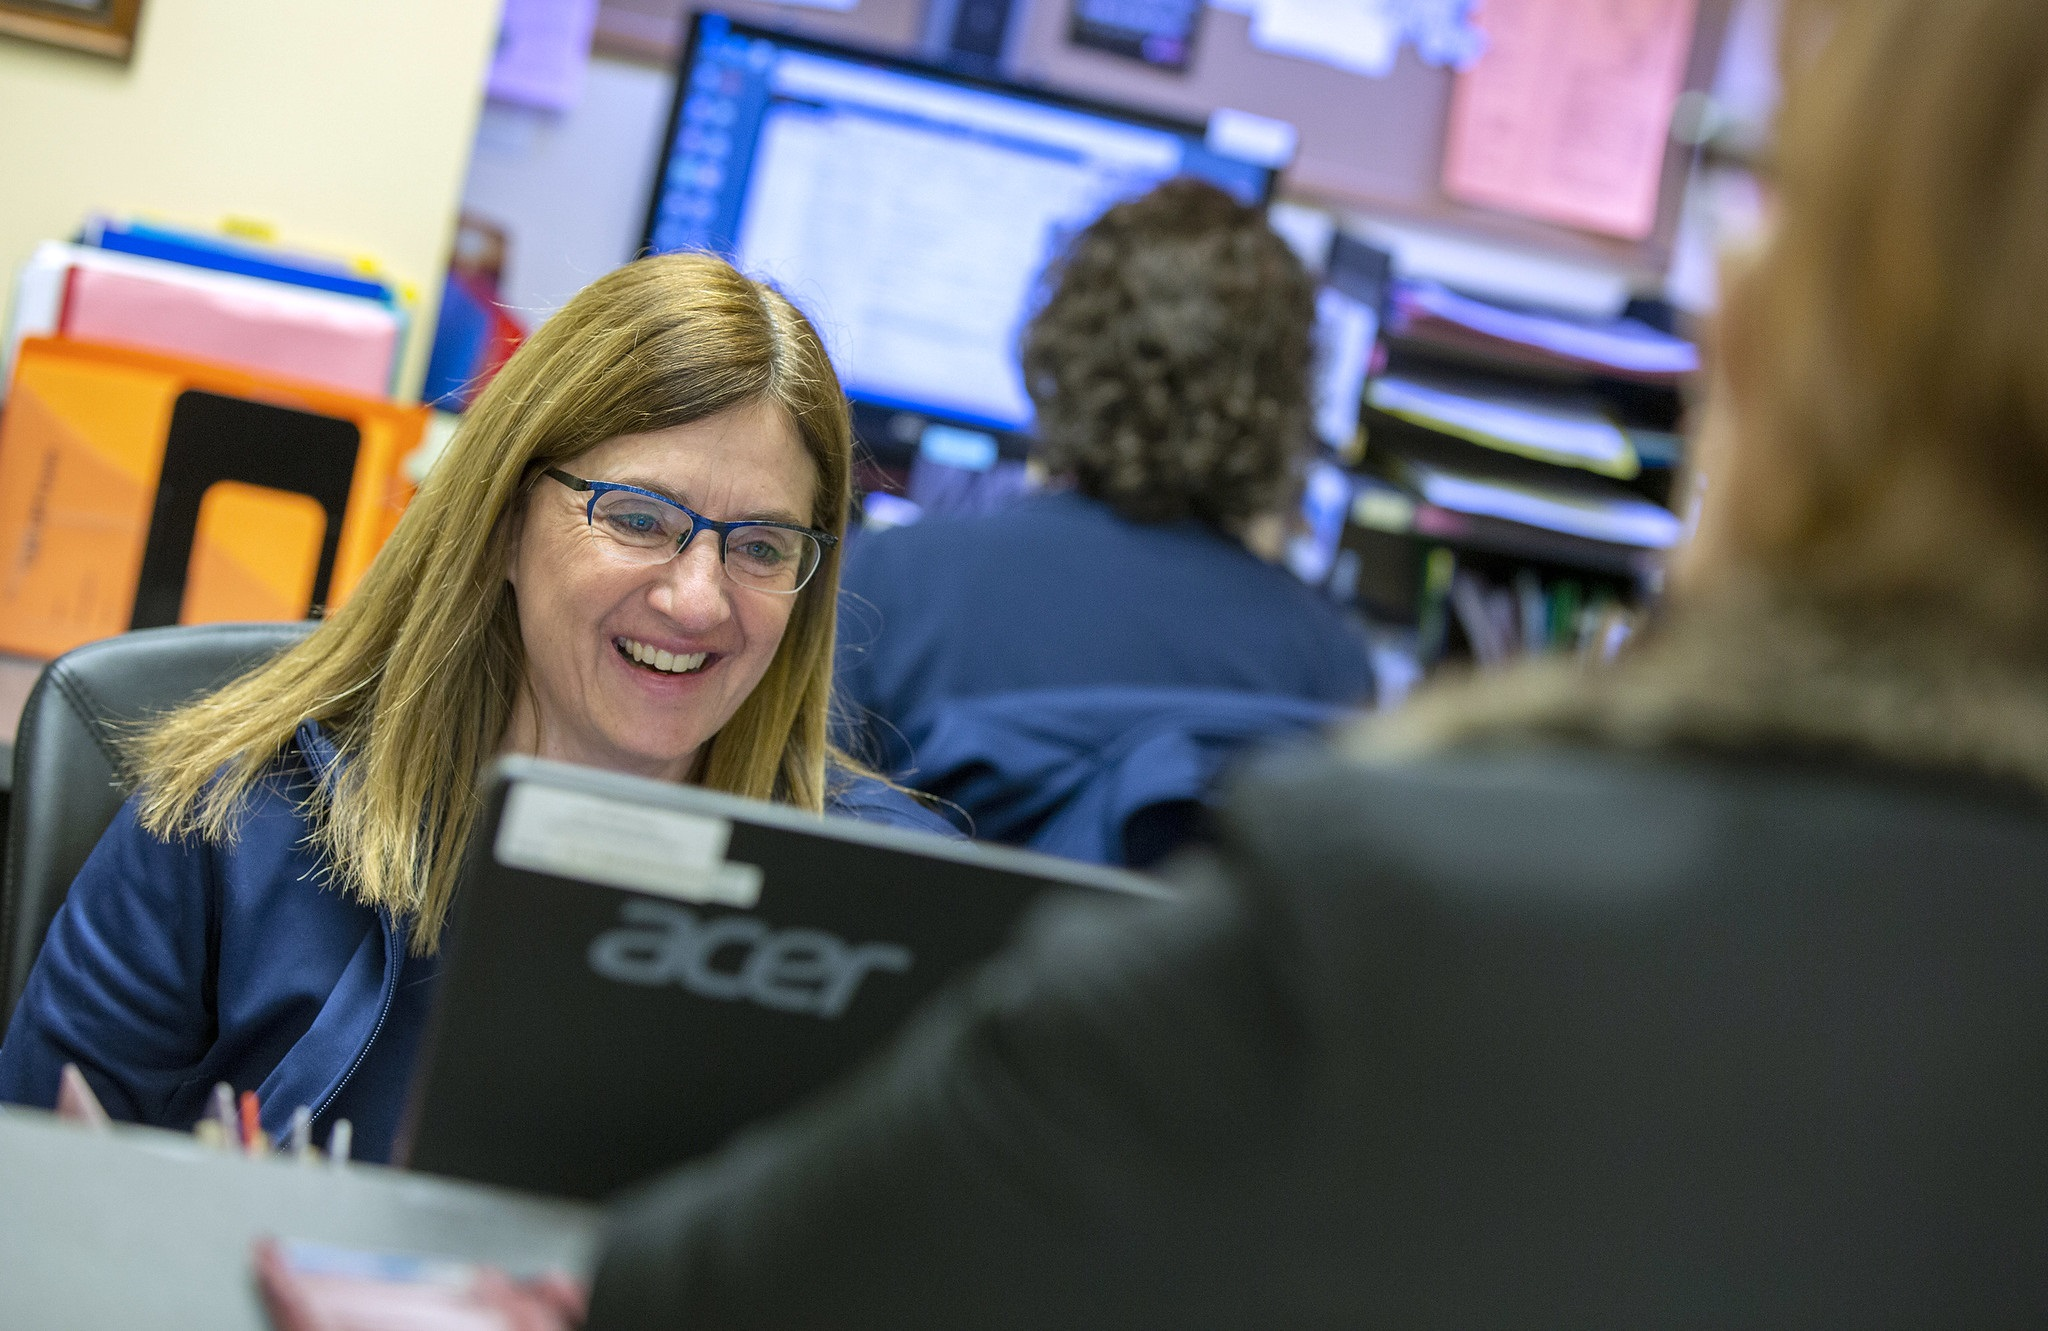 Medical office associate Laura Bjanes smiles as she looks at her computer monitor. She has shoulder-length hair, glasses and is wearing a polo shirt. In front of her a woman is seeing from behind standing at the counter. Another woman employee is behind Laura working at a computer.